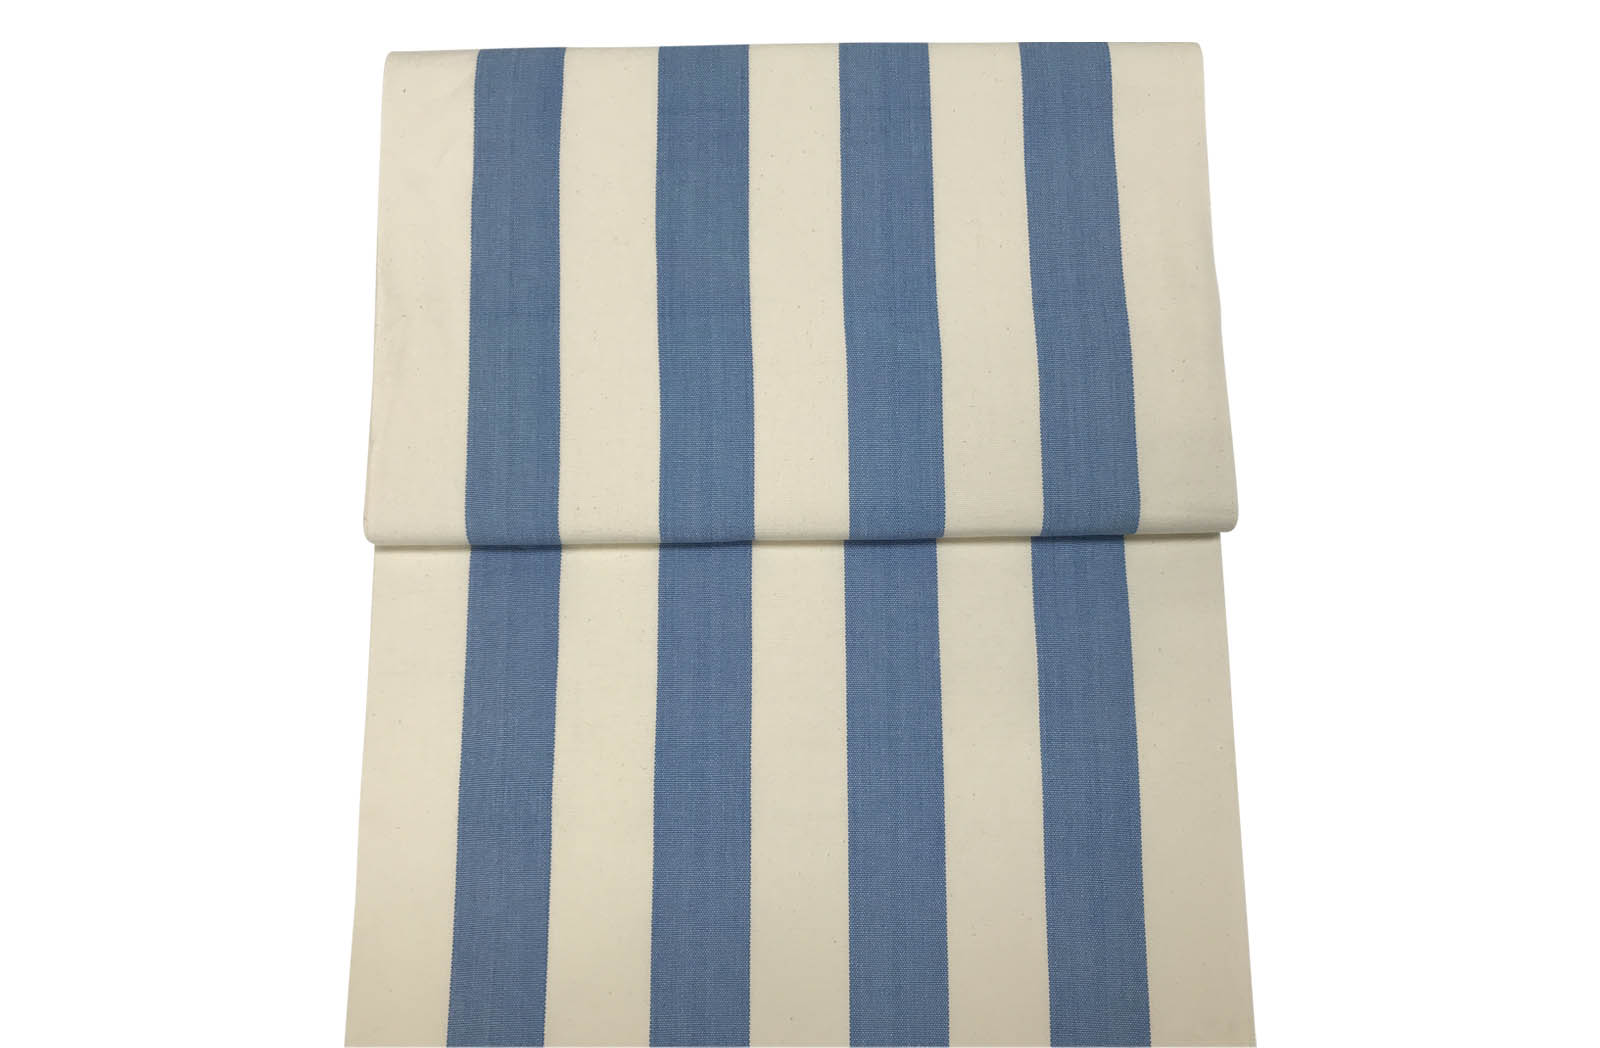 Sky Blue and White Directors Chair Covers | Replacement Director Chair Covers